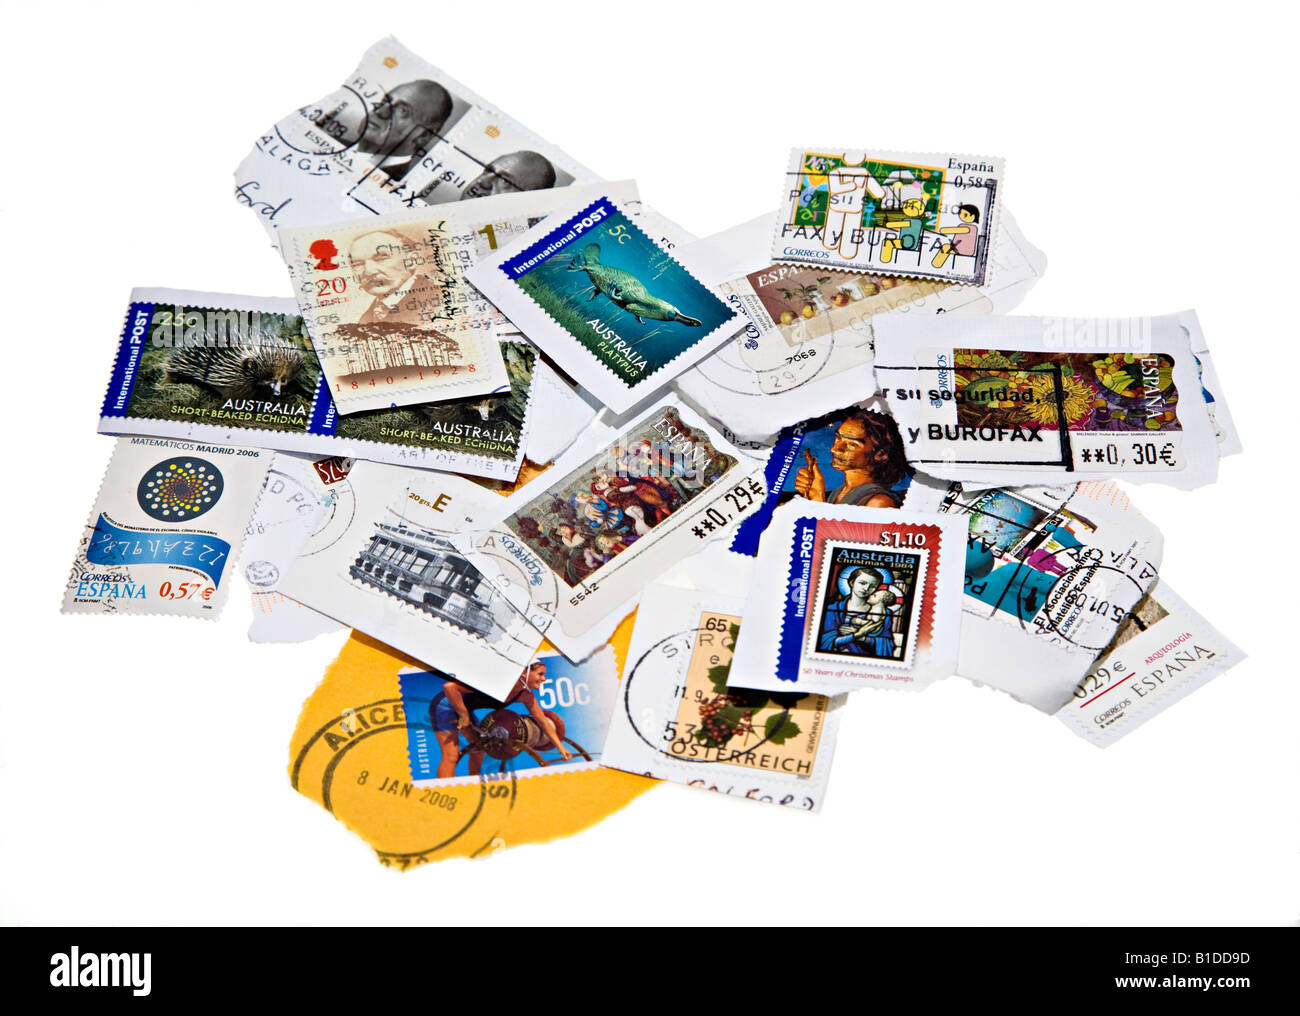 Mixture of franked used international postage stamps from variety of countries - Stock Image